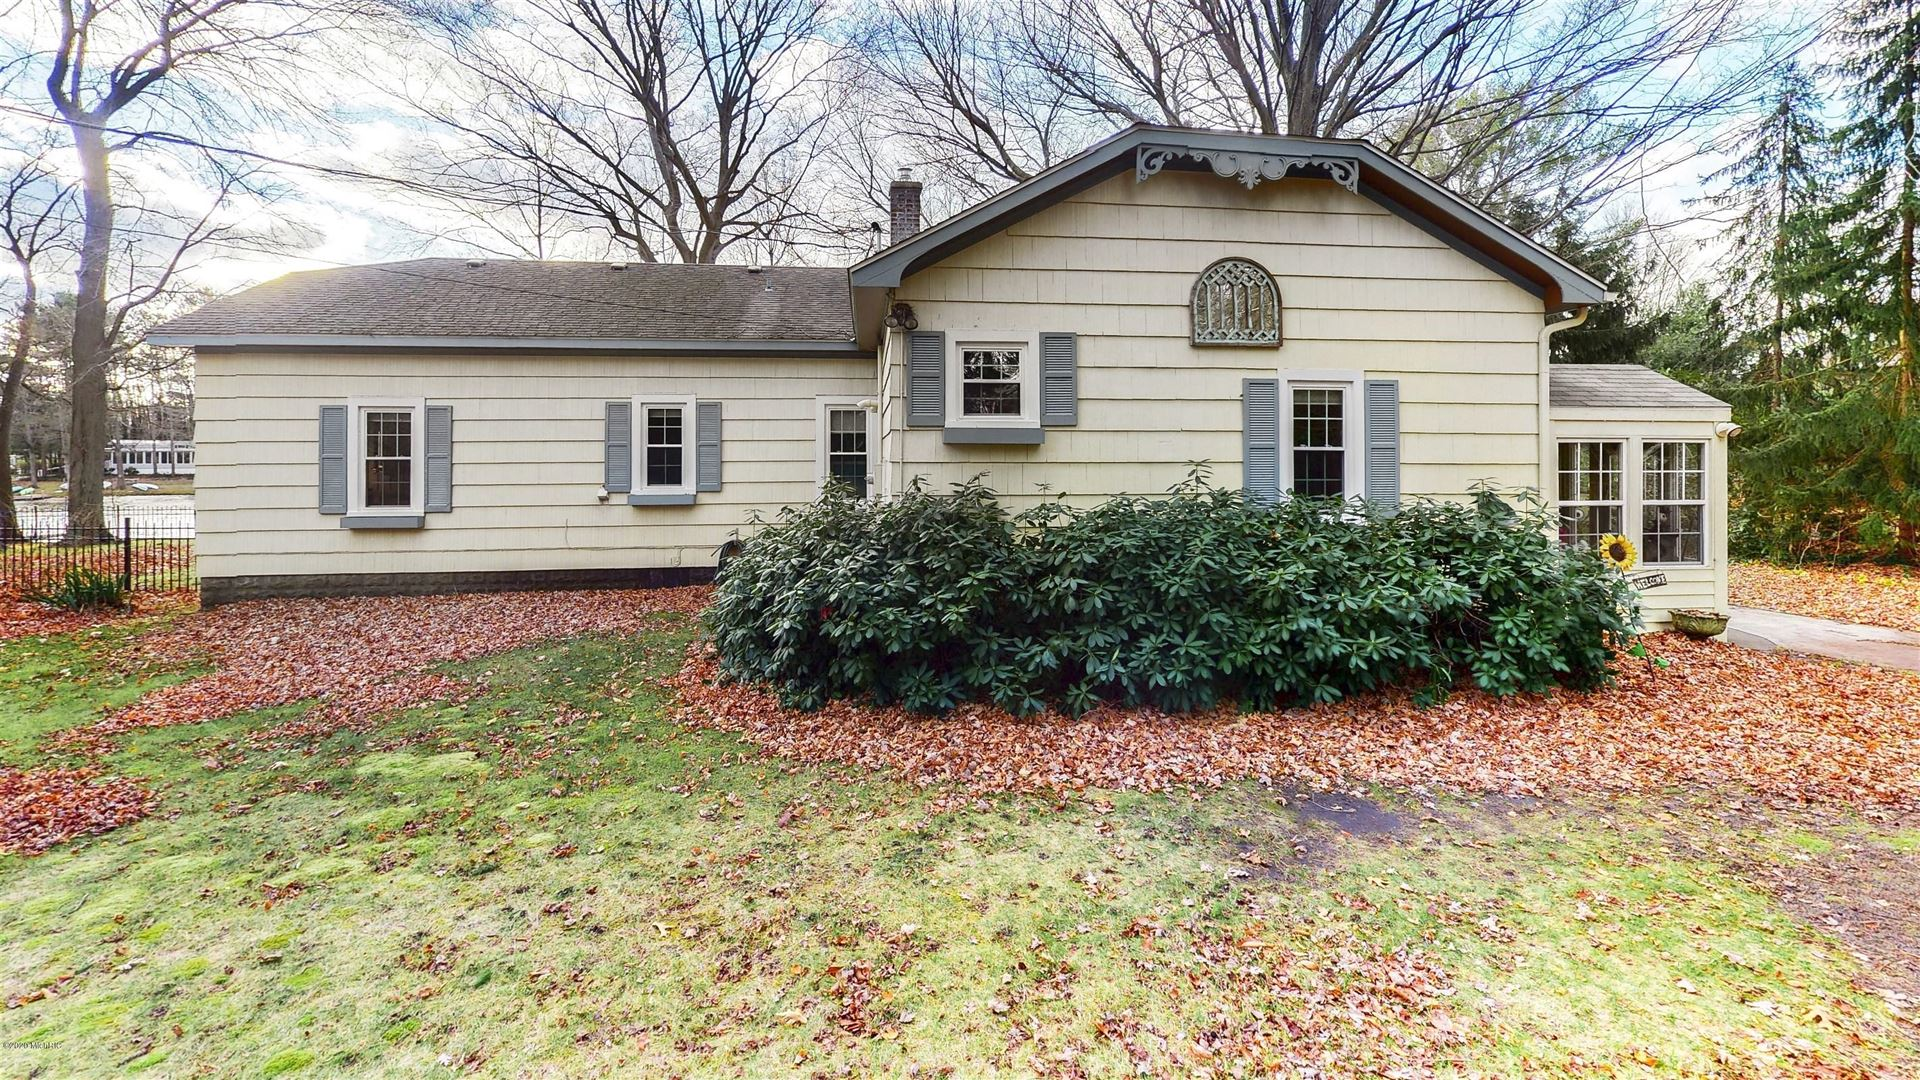 6460 136th Avenue, Saugatuck, MI 49453 - MLS#: 20048036